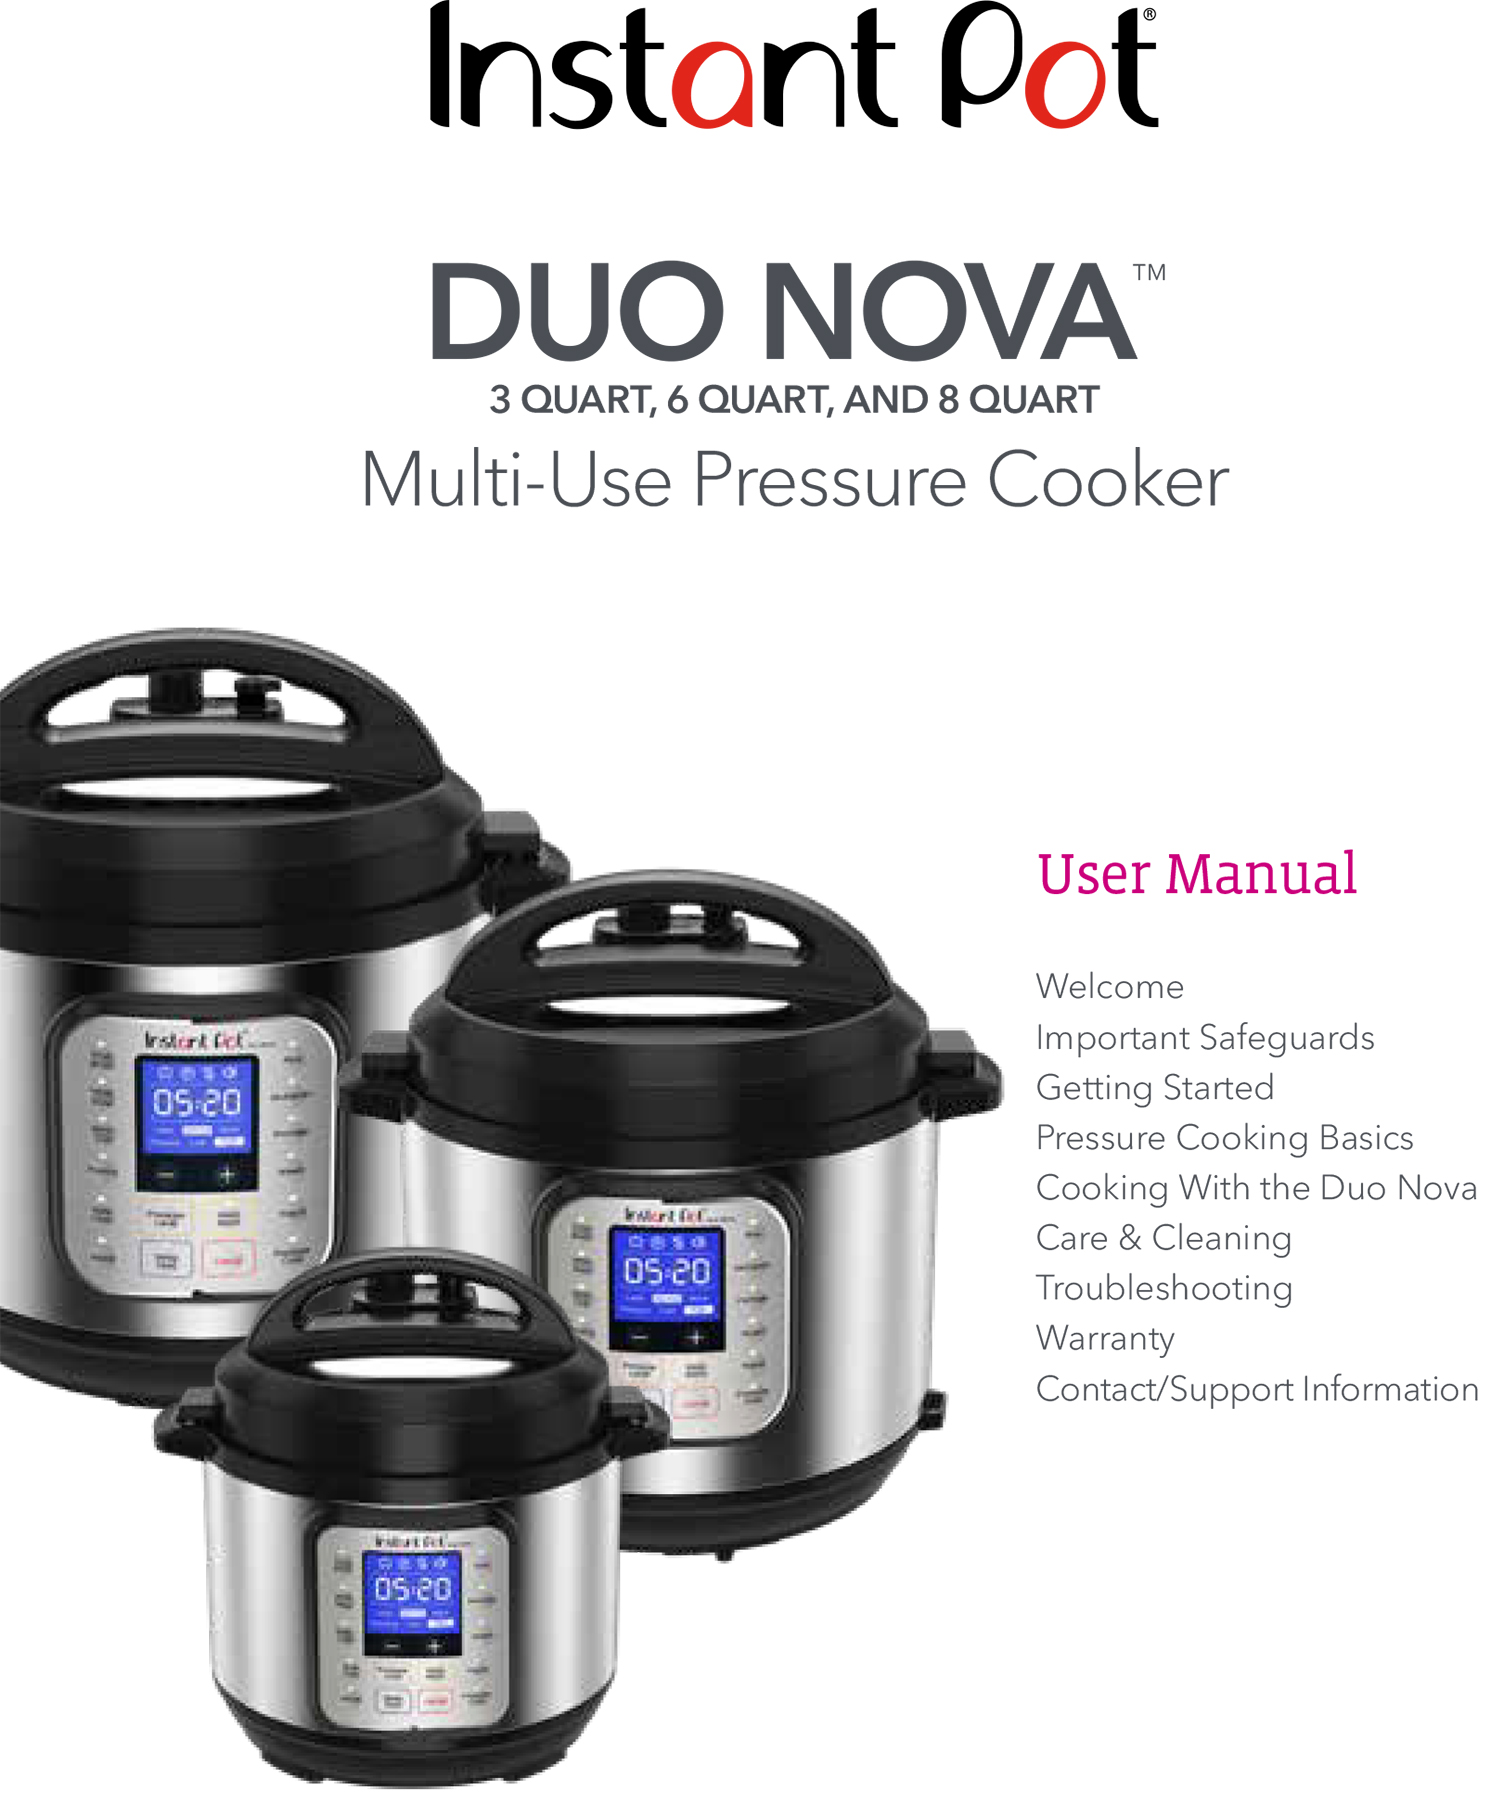 Instant Pot Duo Nova English Manual